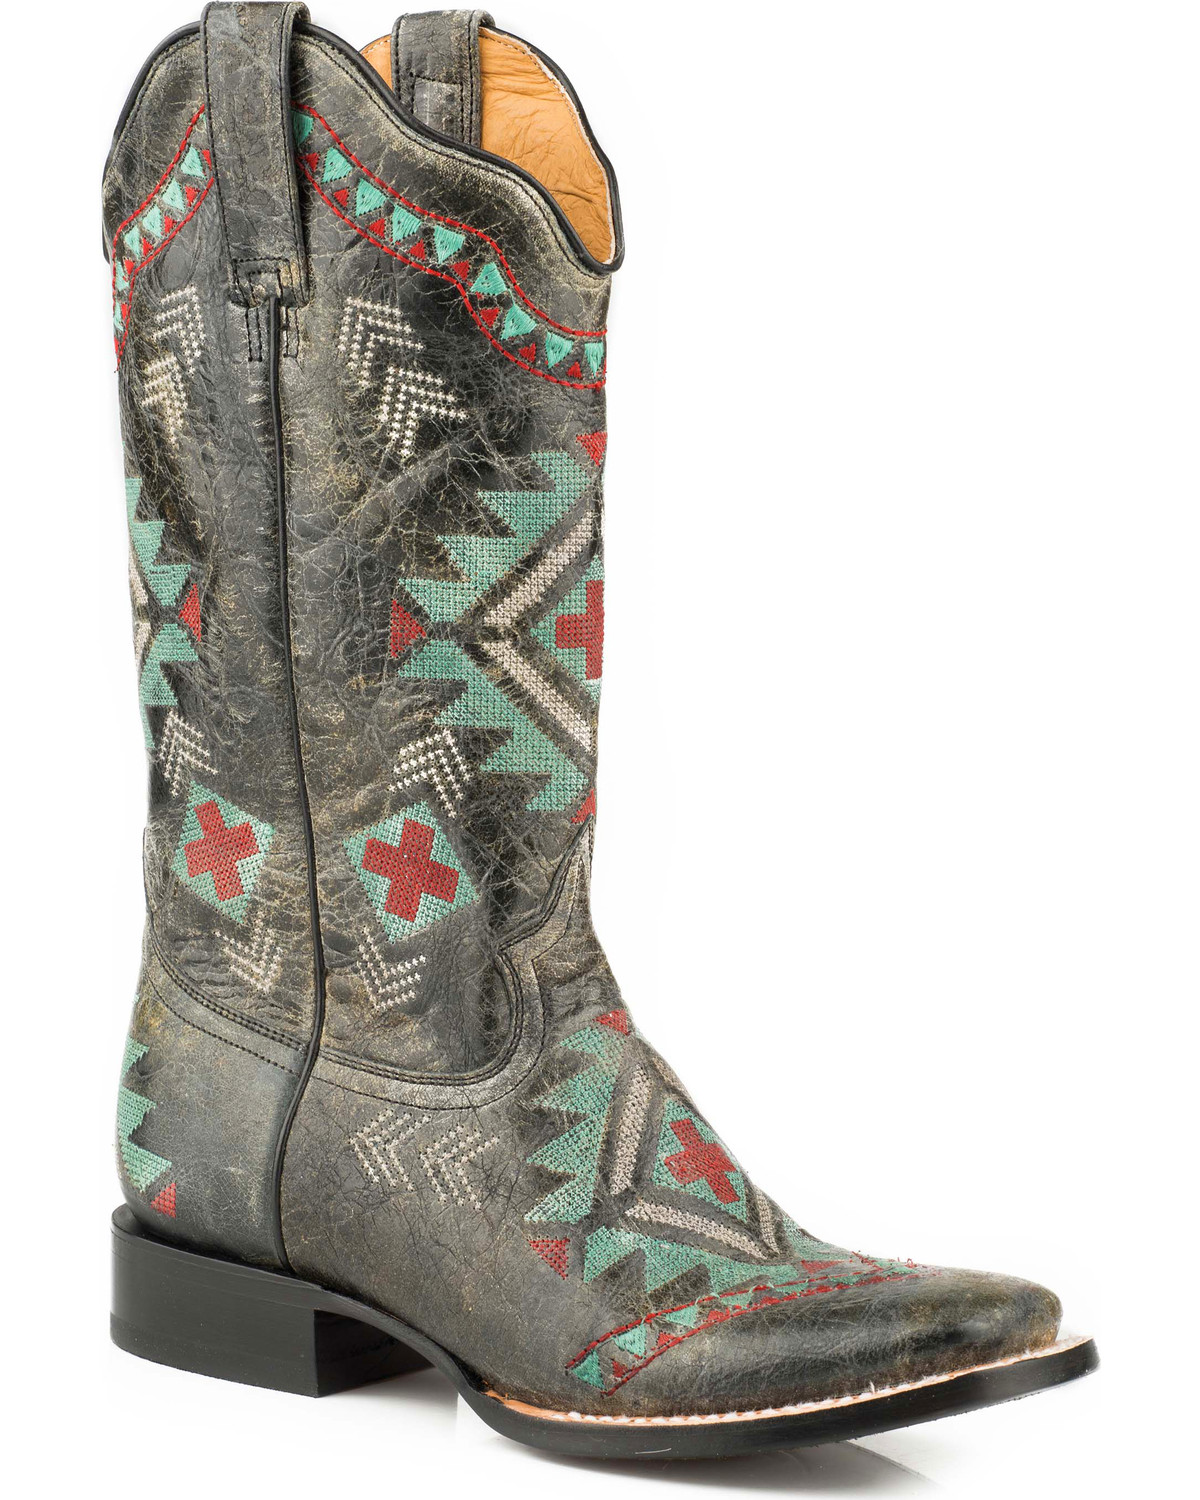 ROPER Girls Out West Aztec Embroidered Cowgirl Boot Square Toe